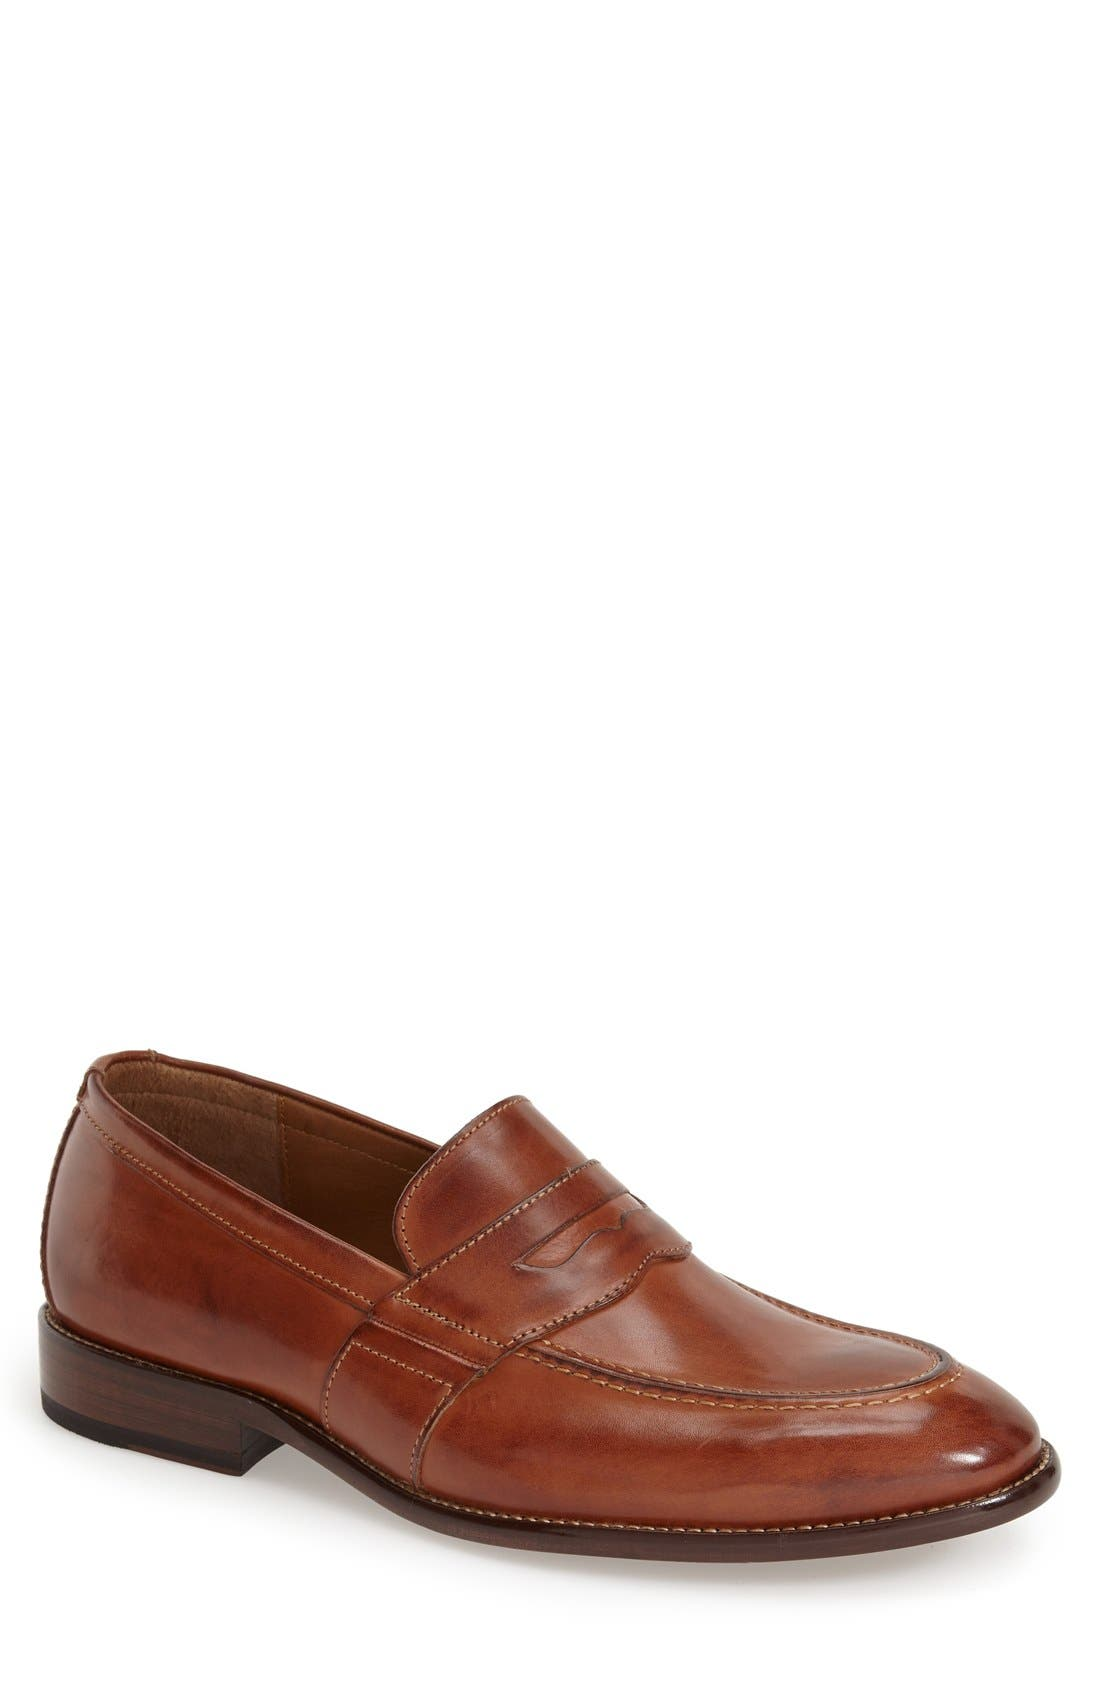 Main Image - J & M 1850 'Allred' Penny Loafer (Men) (Nordstrom Exclusive)